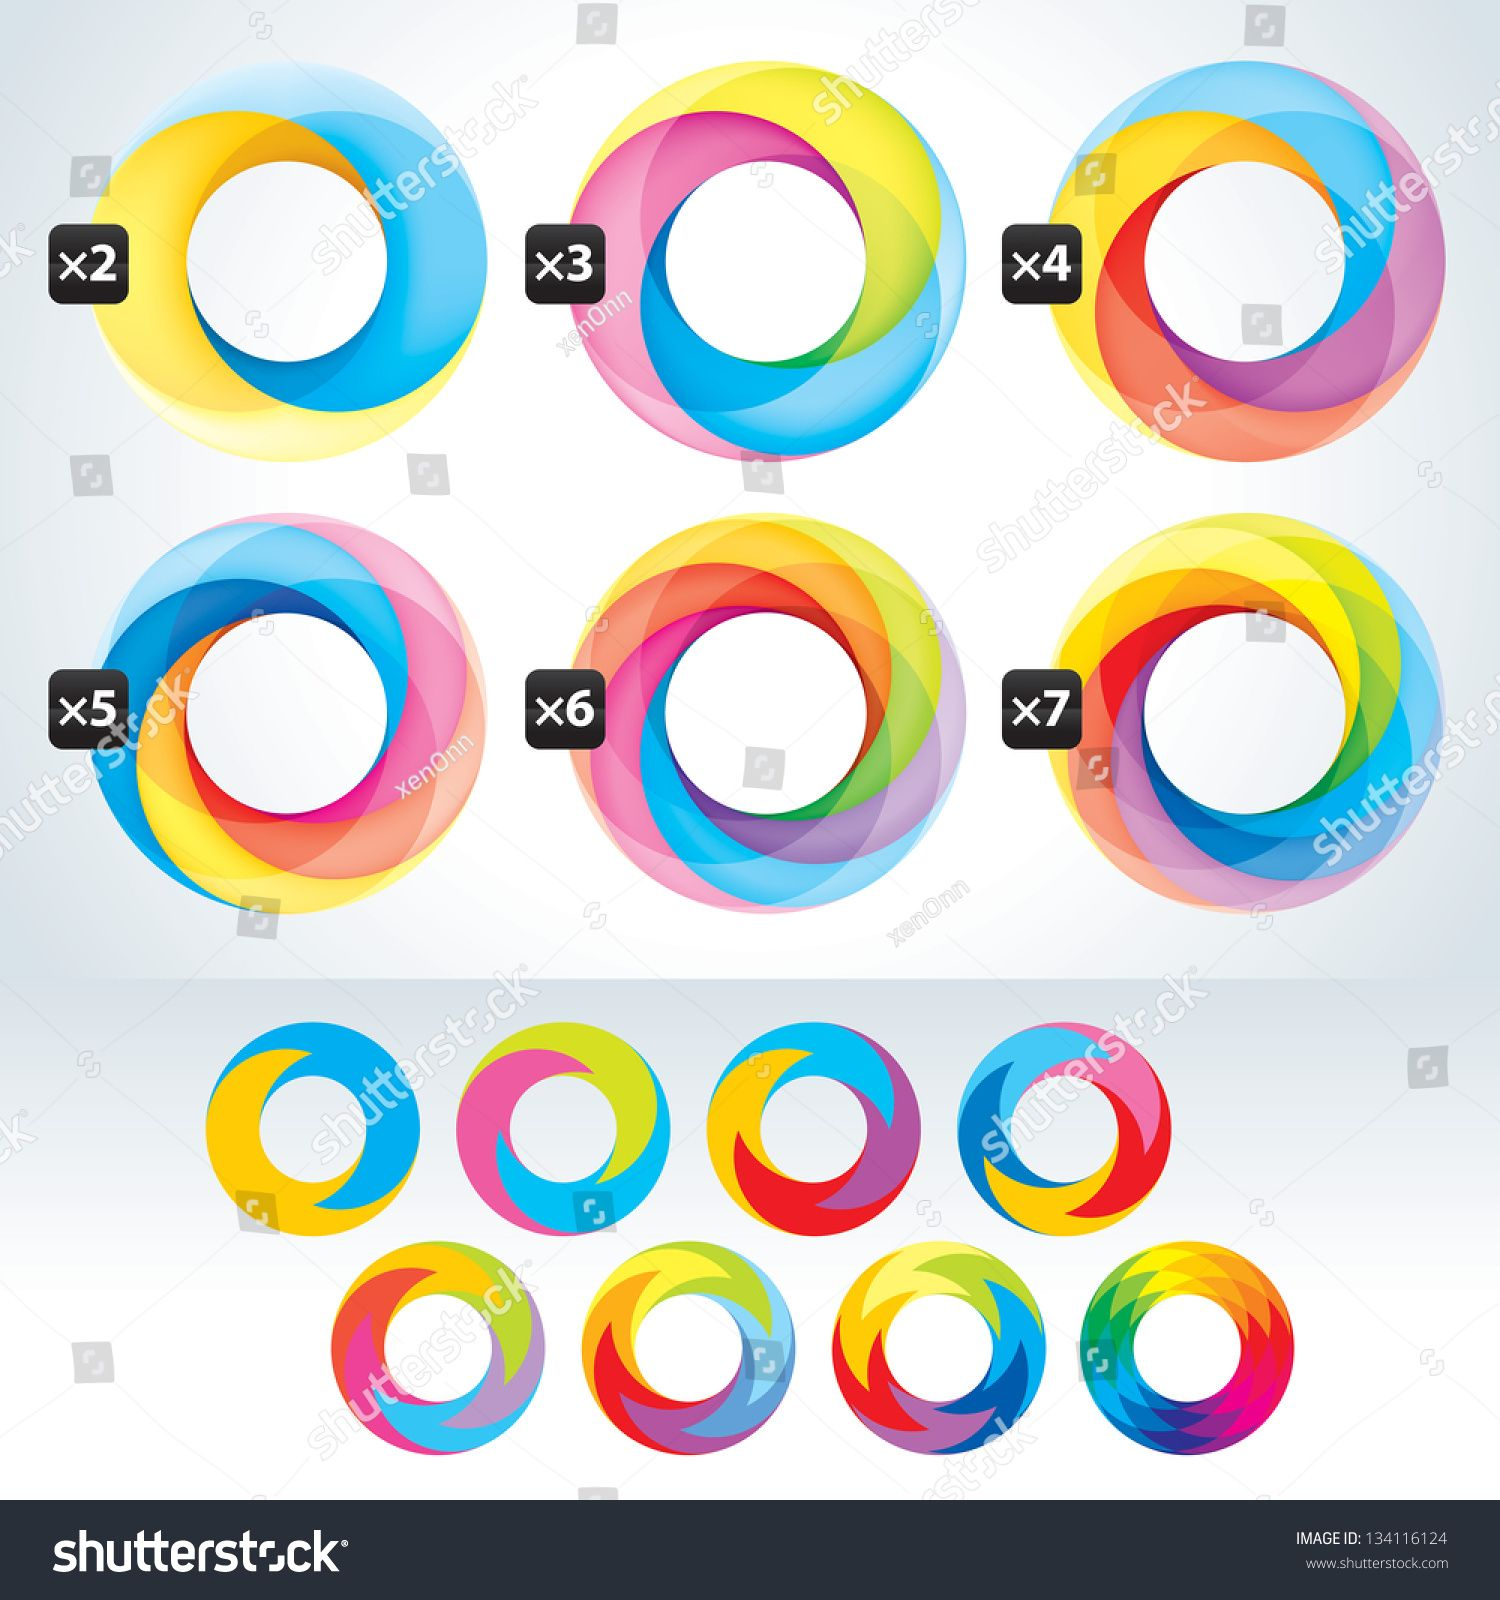 Set of abstact Infinite loop symbol template Icons